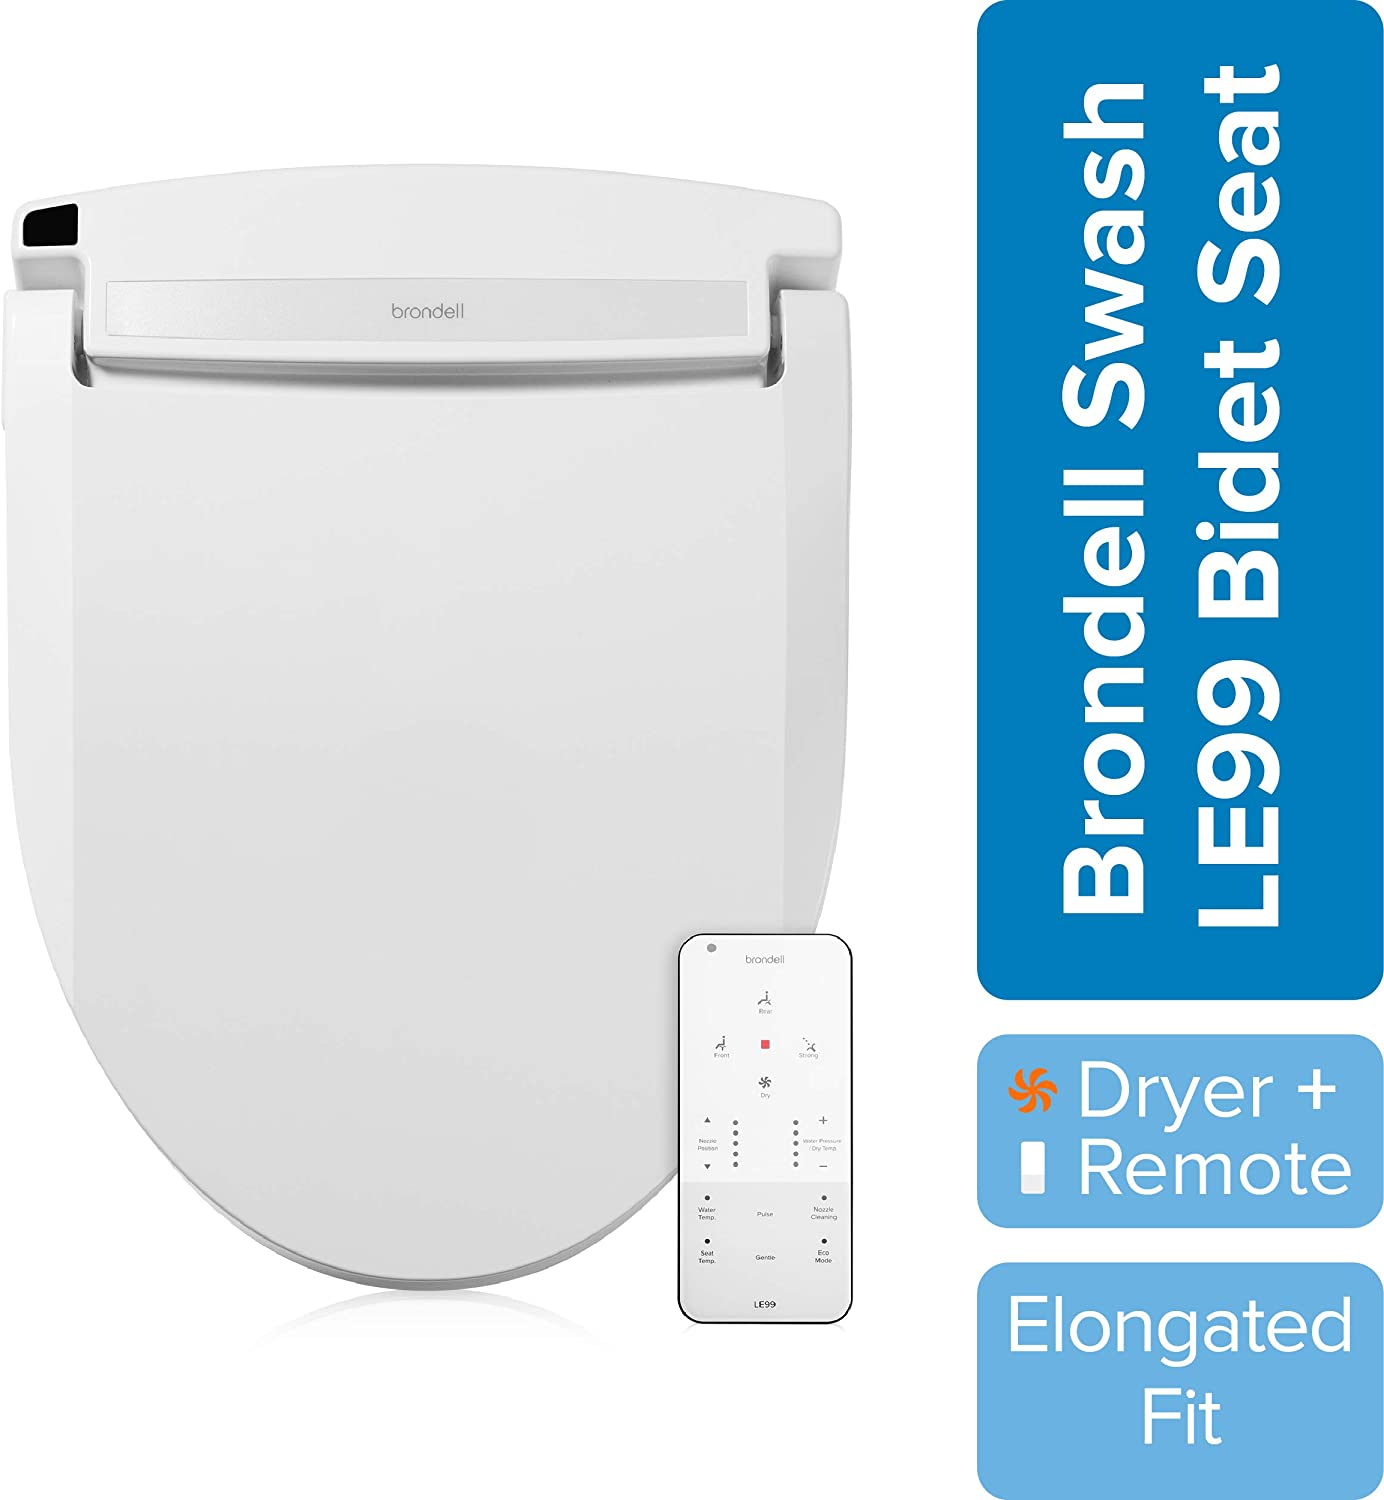 Brondell Swash Electronic Bidet Toilet Seat LE99, Fits Elongated Toilets, White – Lite-Touch Remote, Warm Air Dryer, Strong Wash Mode, Stainless-Steel Nozzle, Saved User Settings & Easy Installation